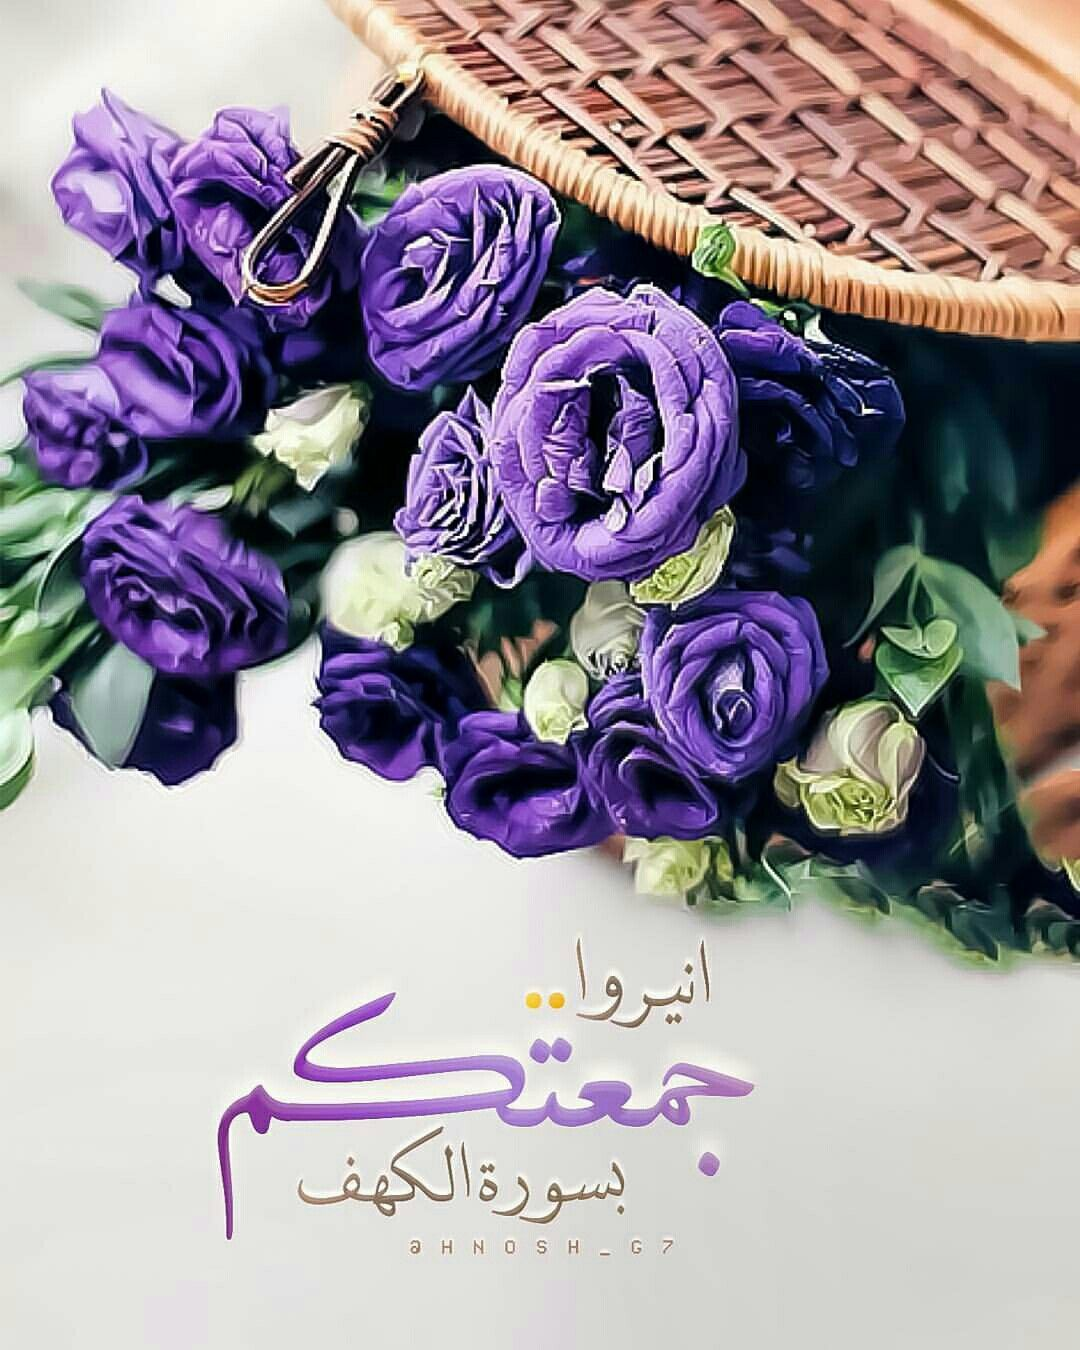 Pin by Hana Baharoon on جمعه مباركه (With images ...